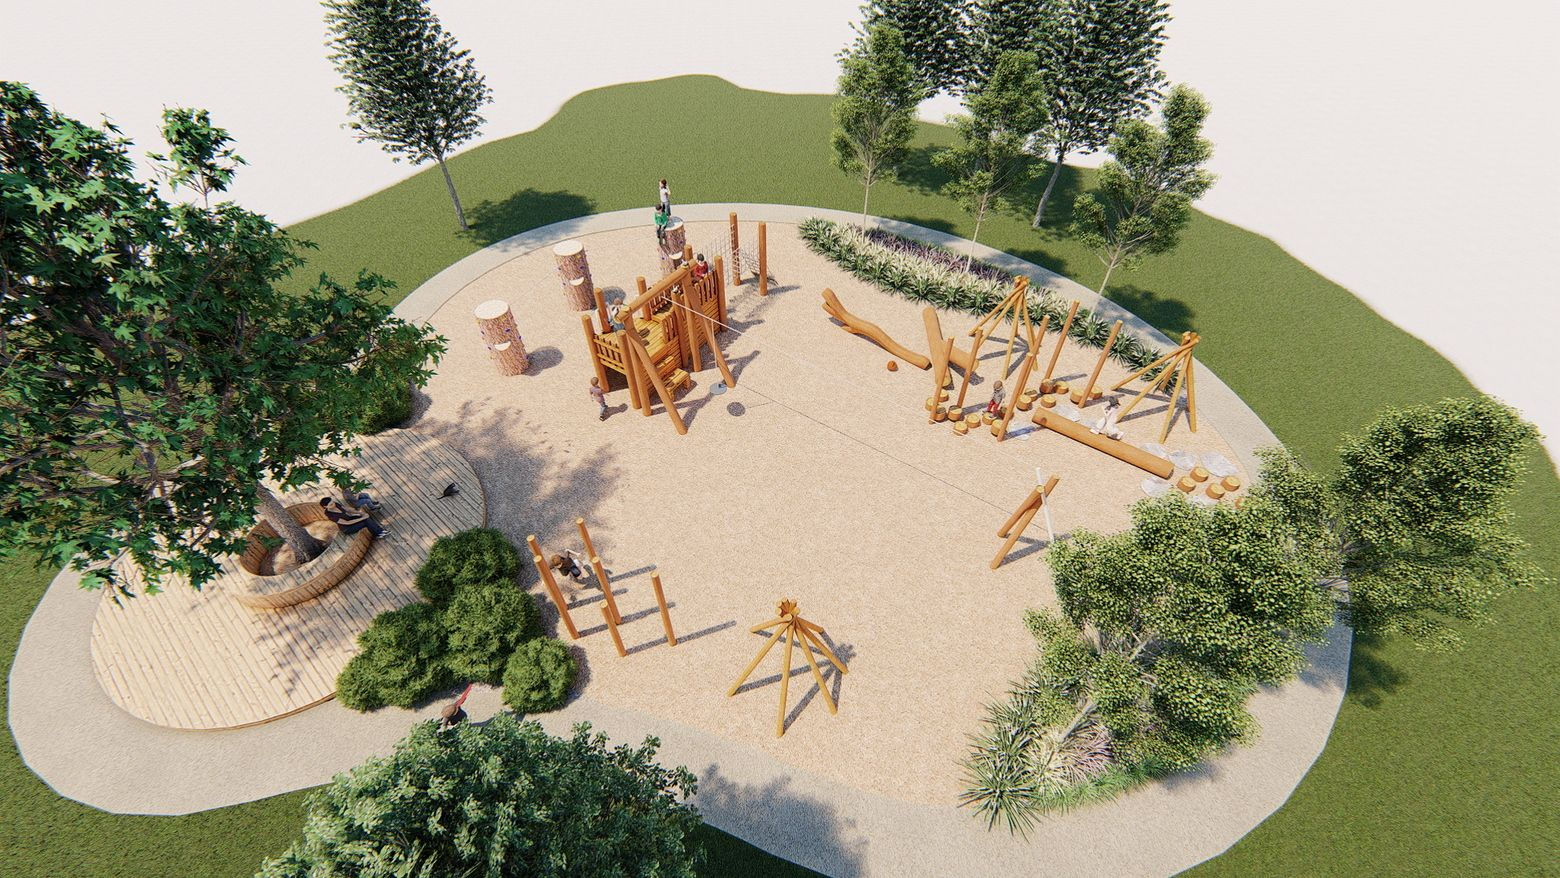 3d model of a nature play space for schoolaged children